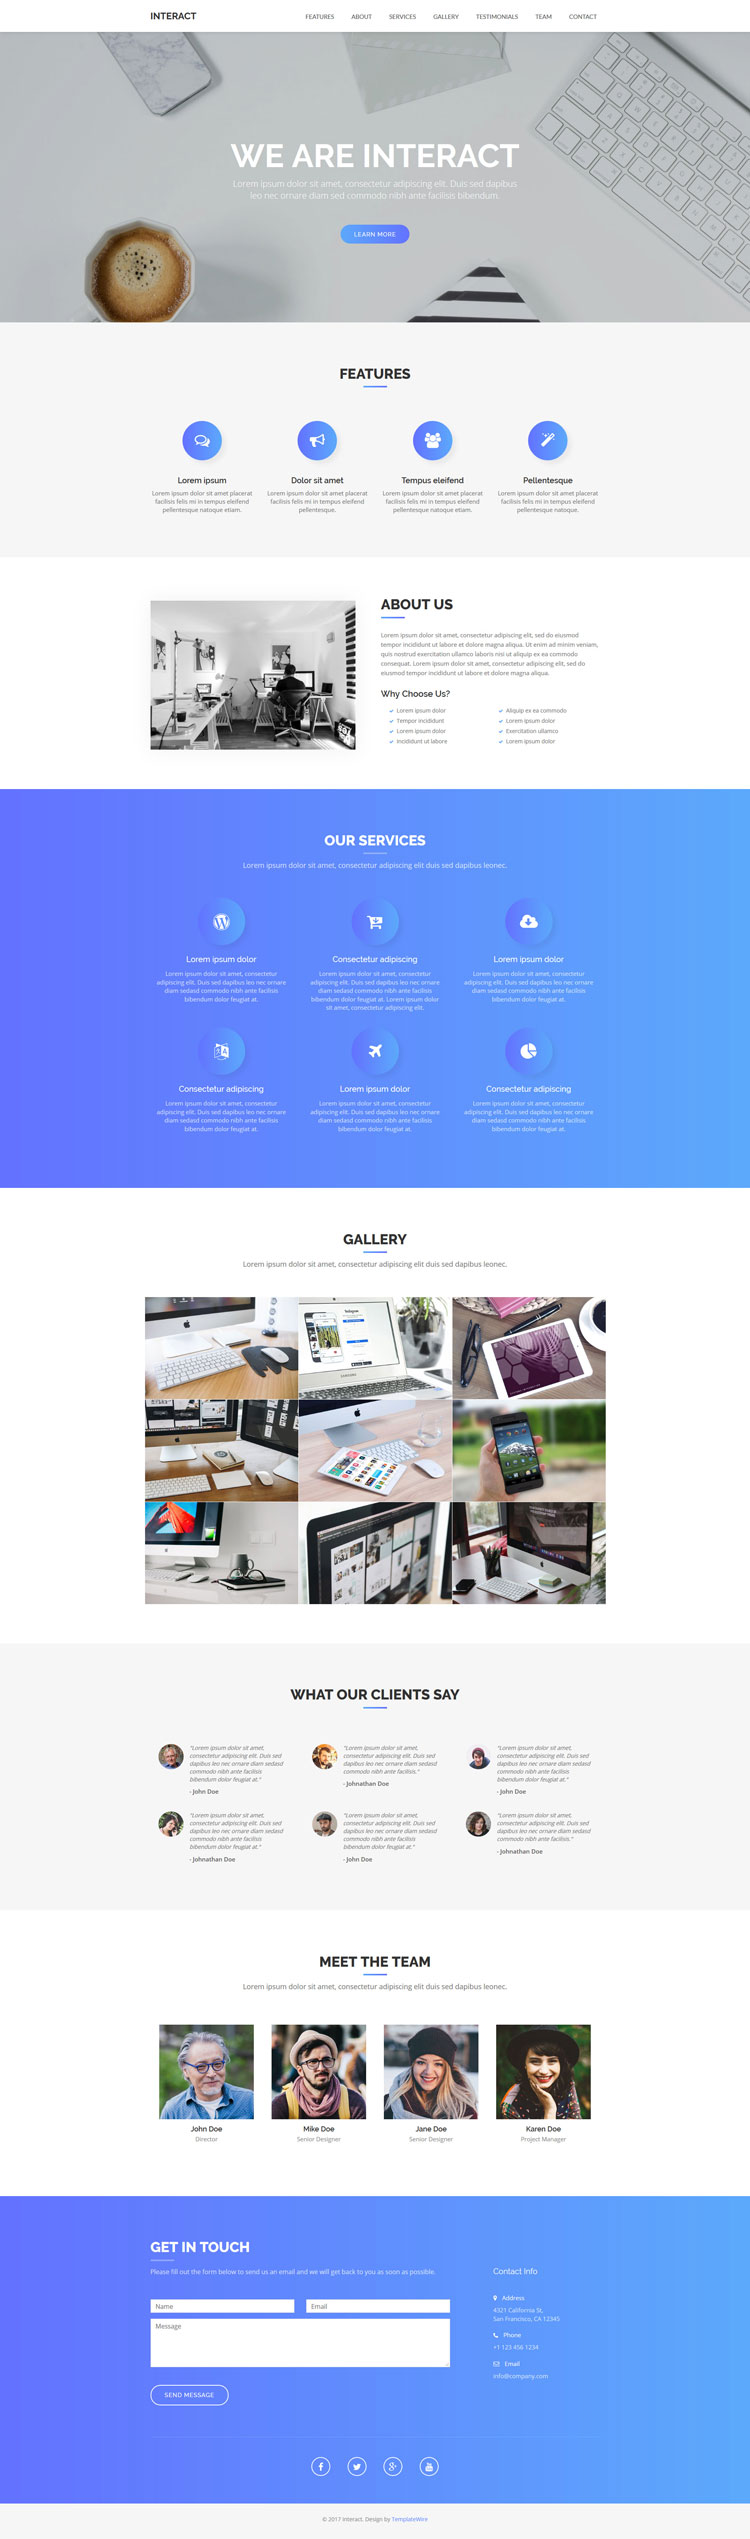 Interact - Free One Page Bootstrap Template | TemplateWire ...